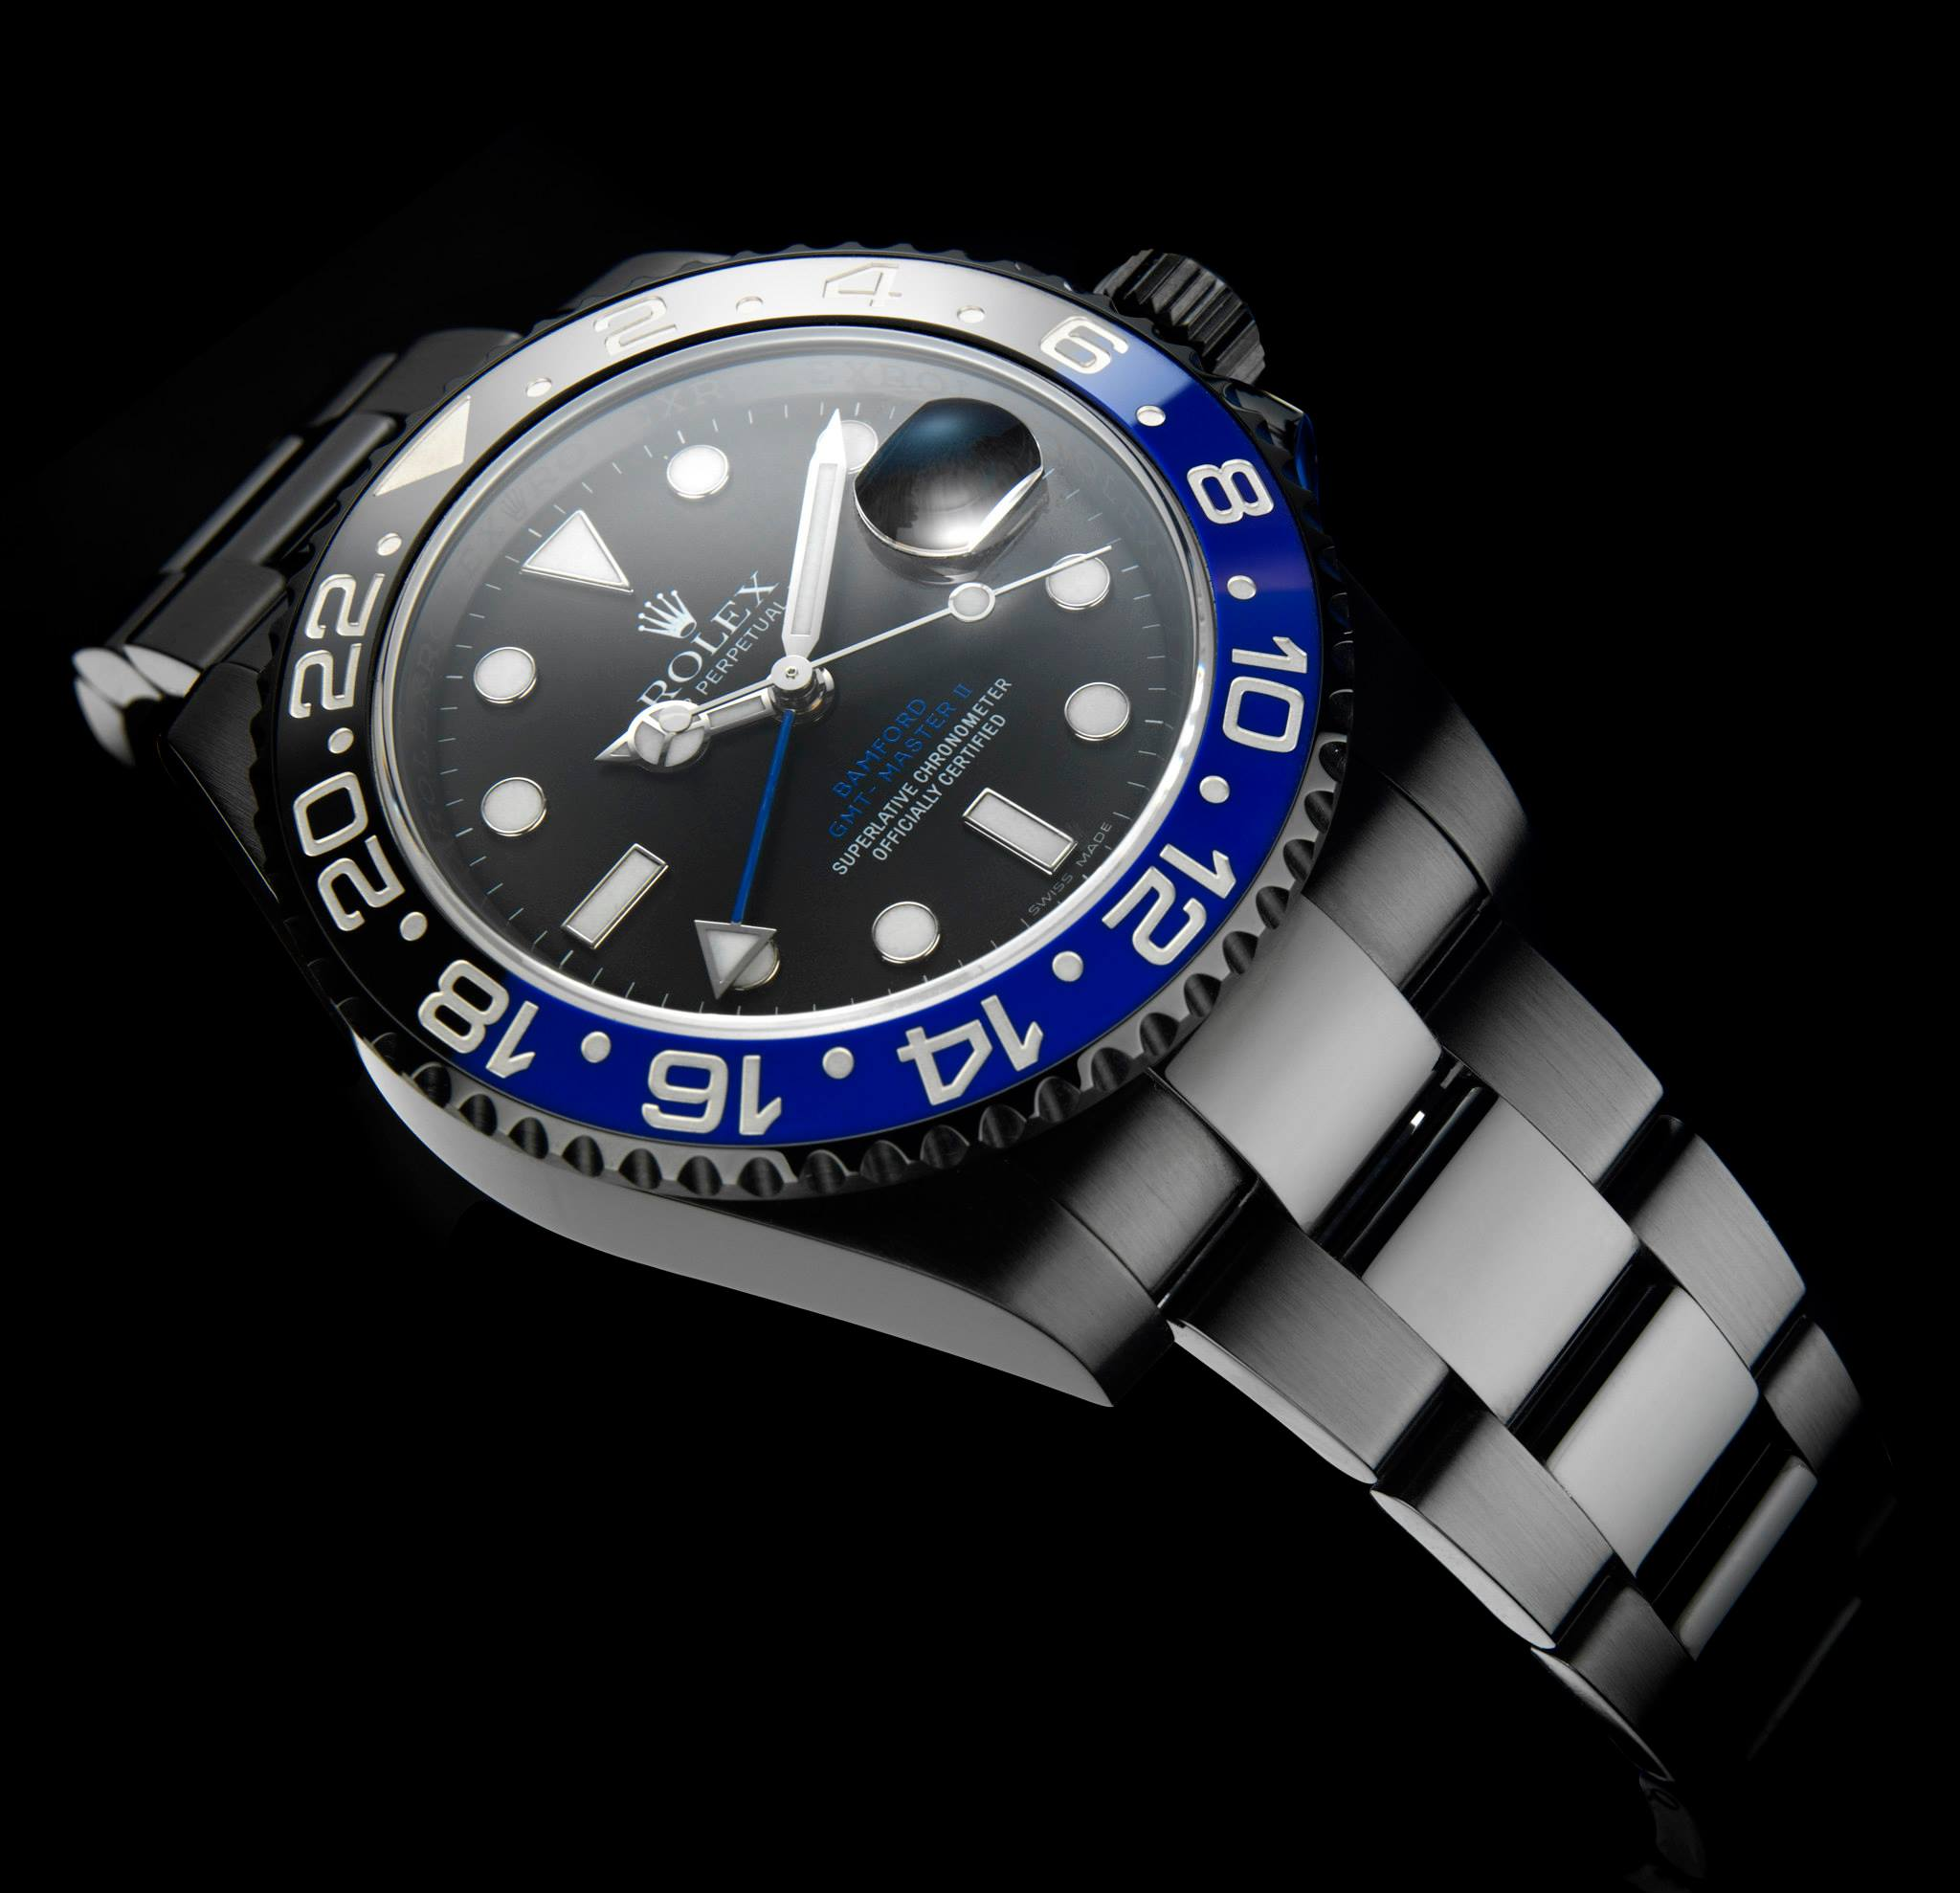 Rolex GMT Master II price 2016